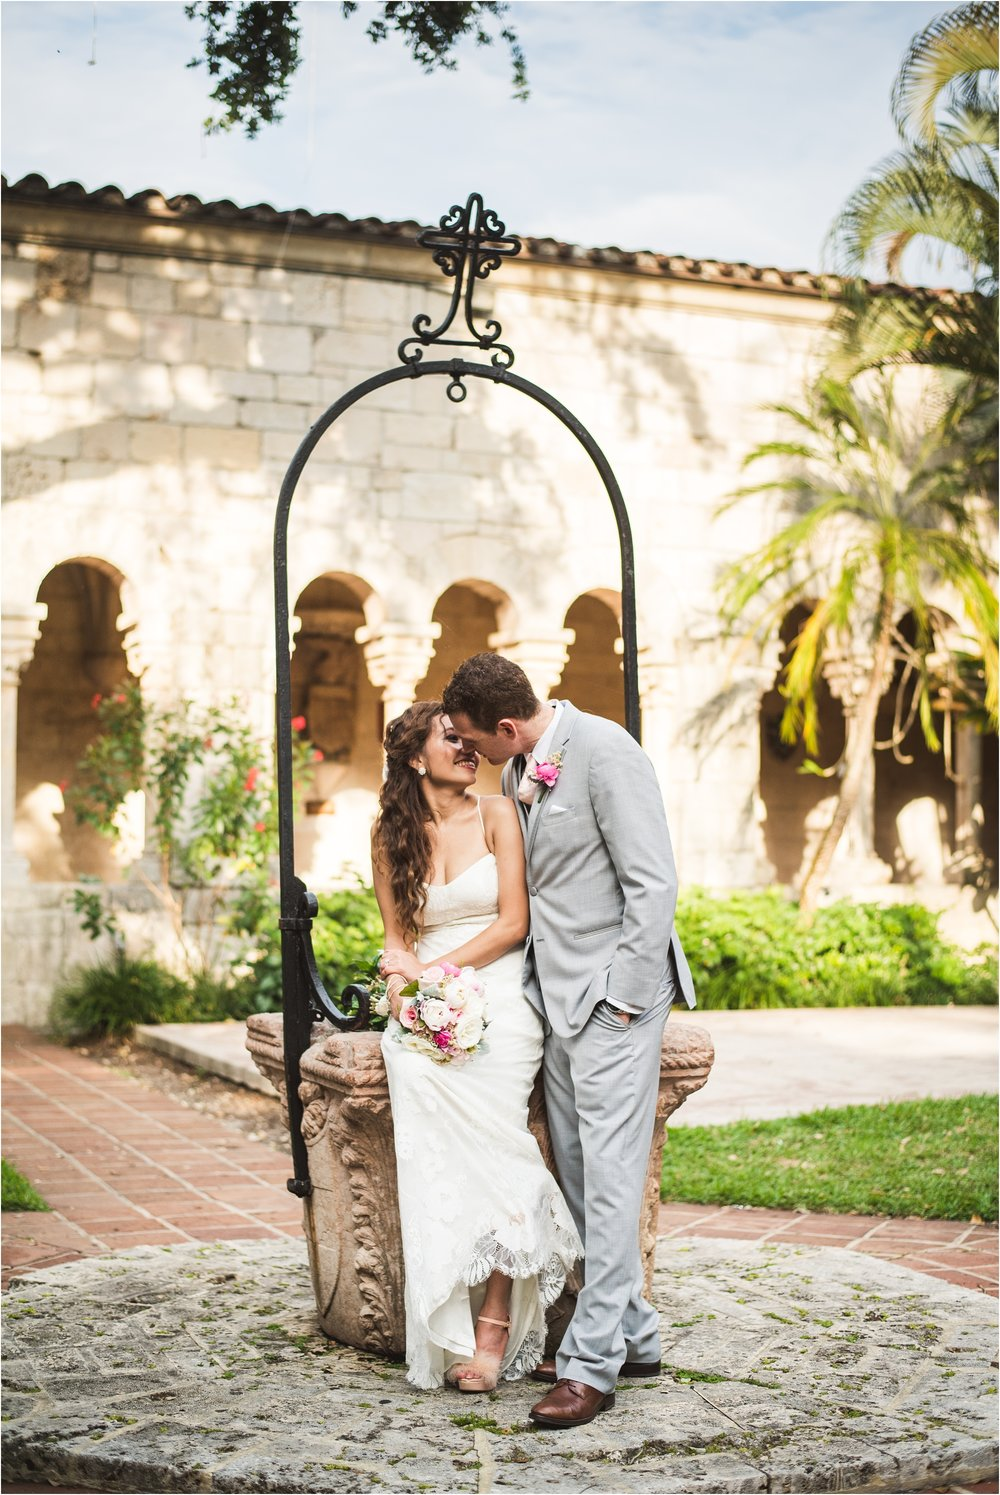 Spanish-Monastery-miami-beach-outdoor-elegant-wedding-photographer-jessenia-gonzalez_1197.jpg